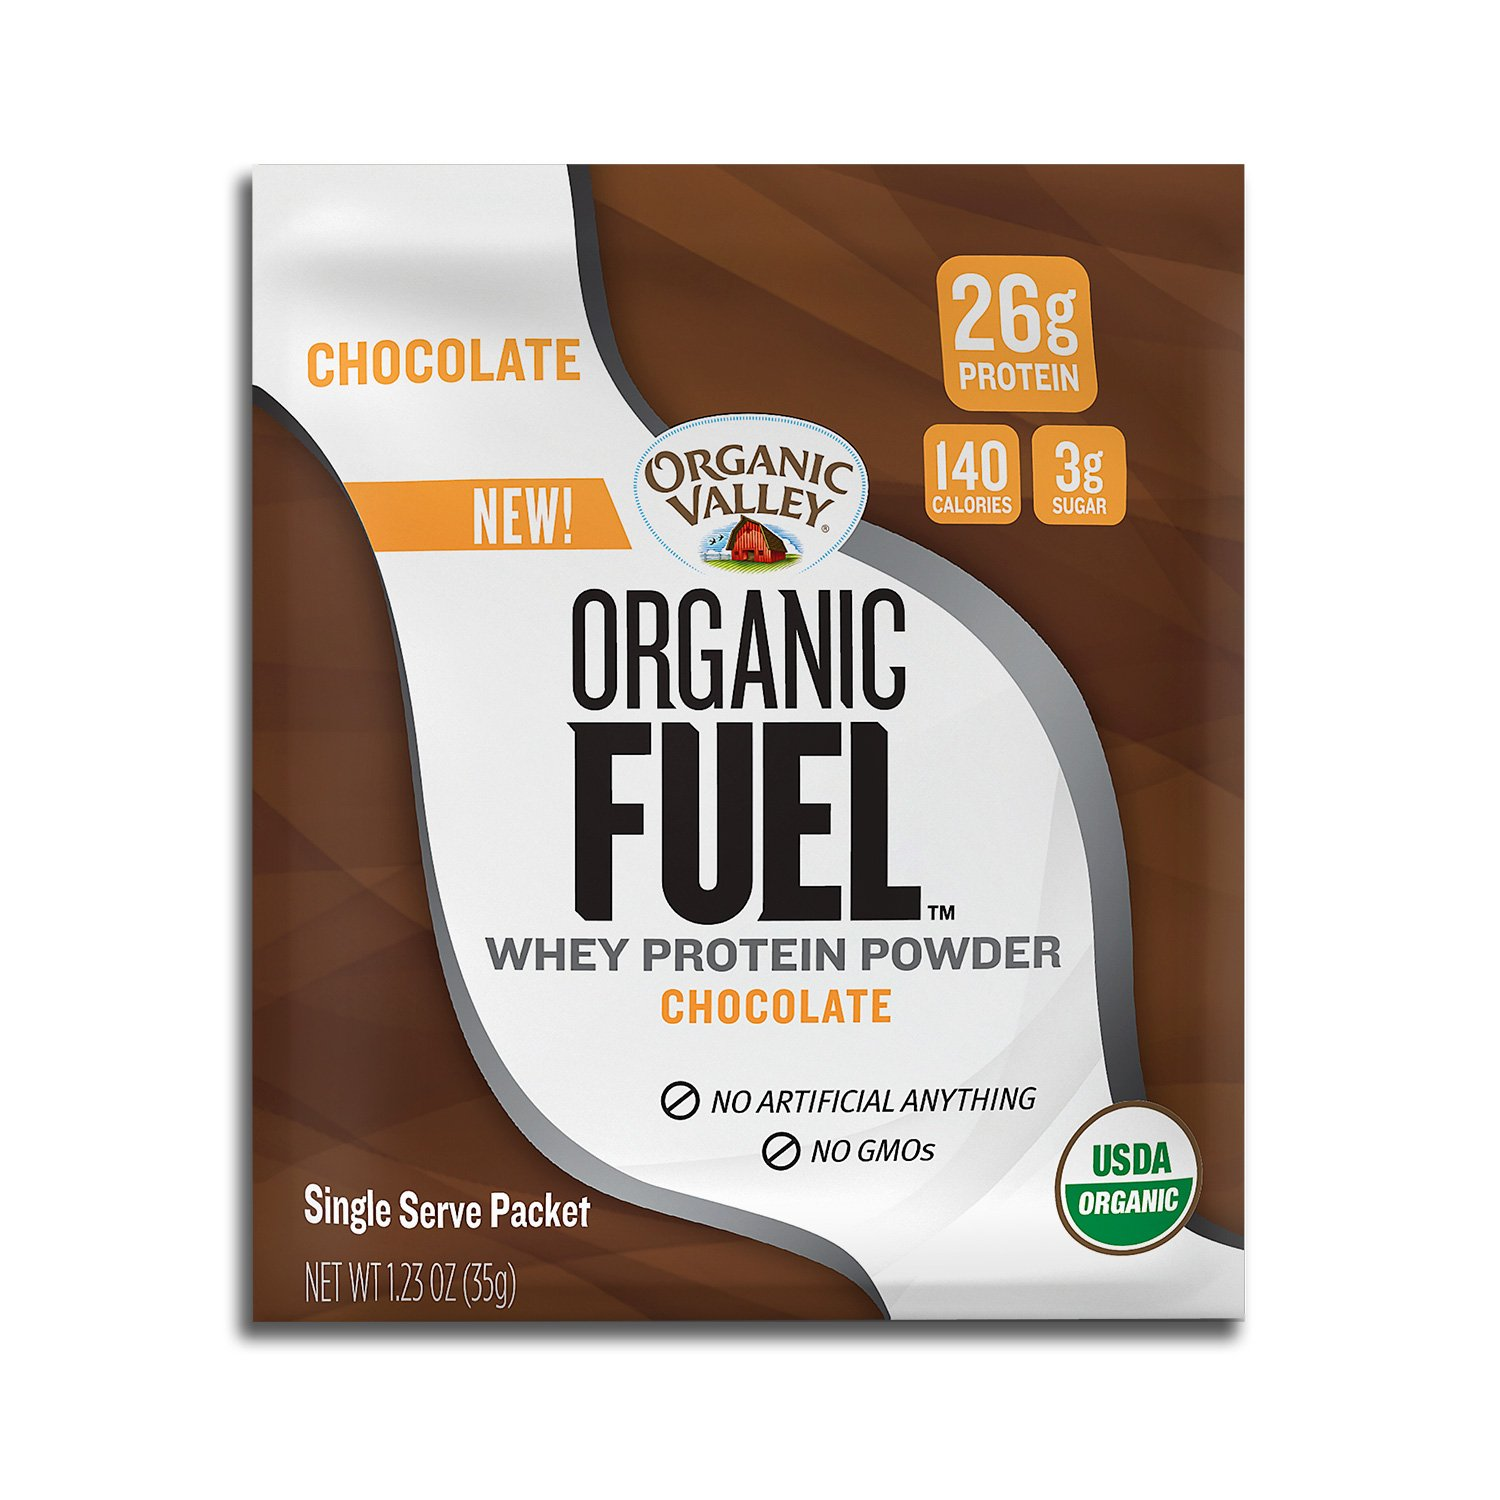 Organic Valley Fuel Whey Protein Powder, Chocolate, 1.23 oz Single Serve Packets, Pack of 12 by Organic Valley